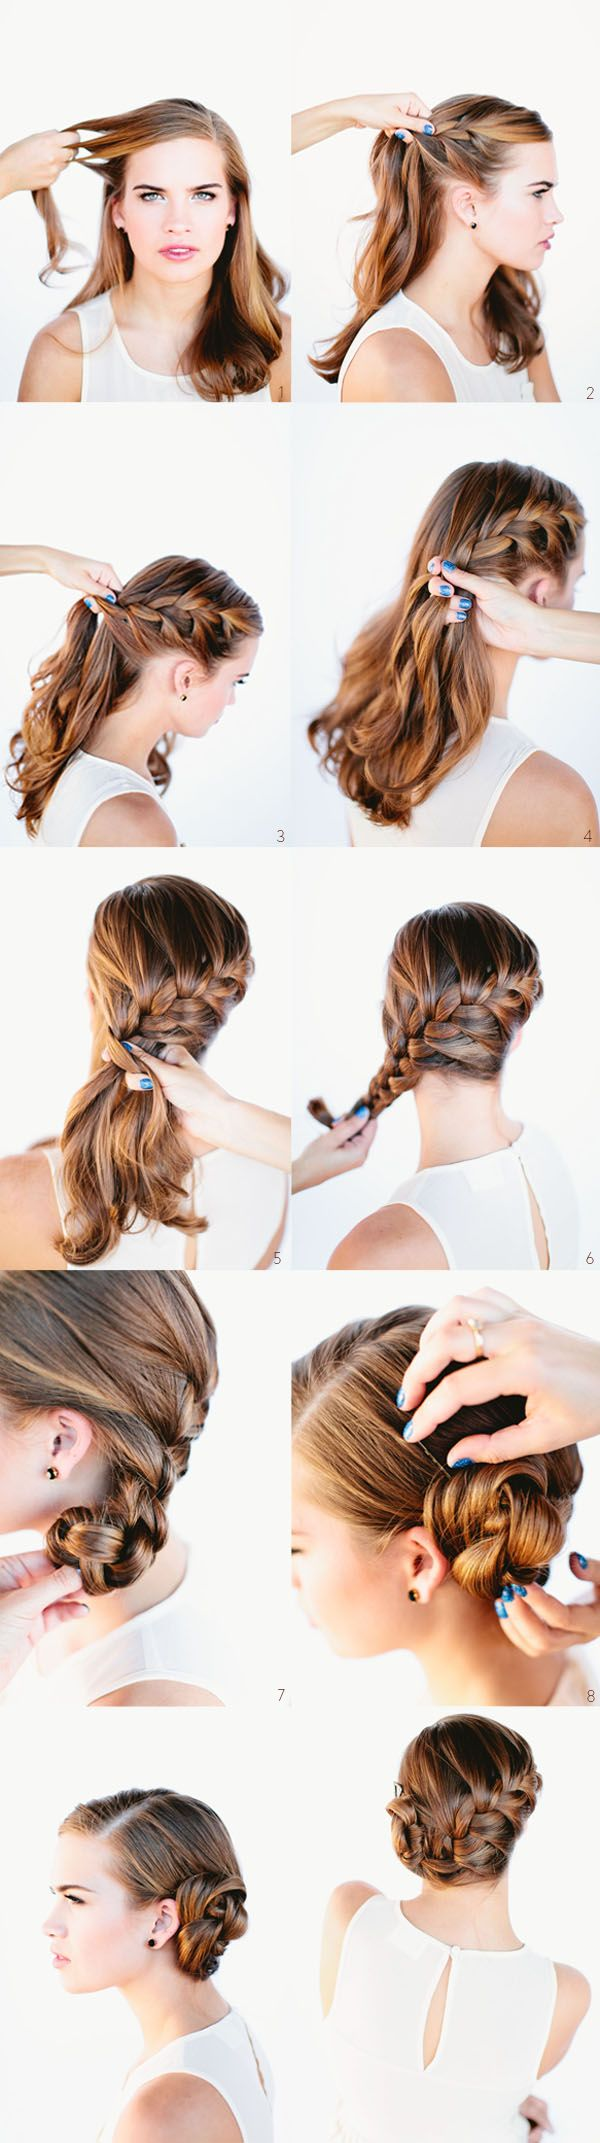 87 best hair images on Pinterest | Cute hairstyles, Hairstyle ideas ...